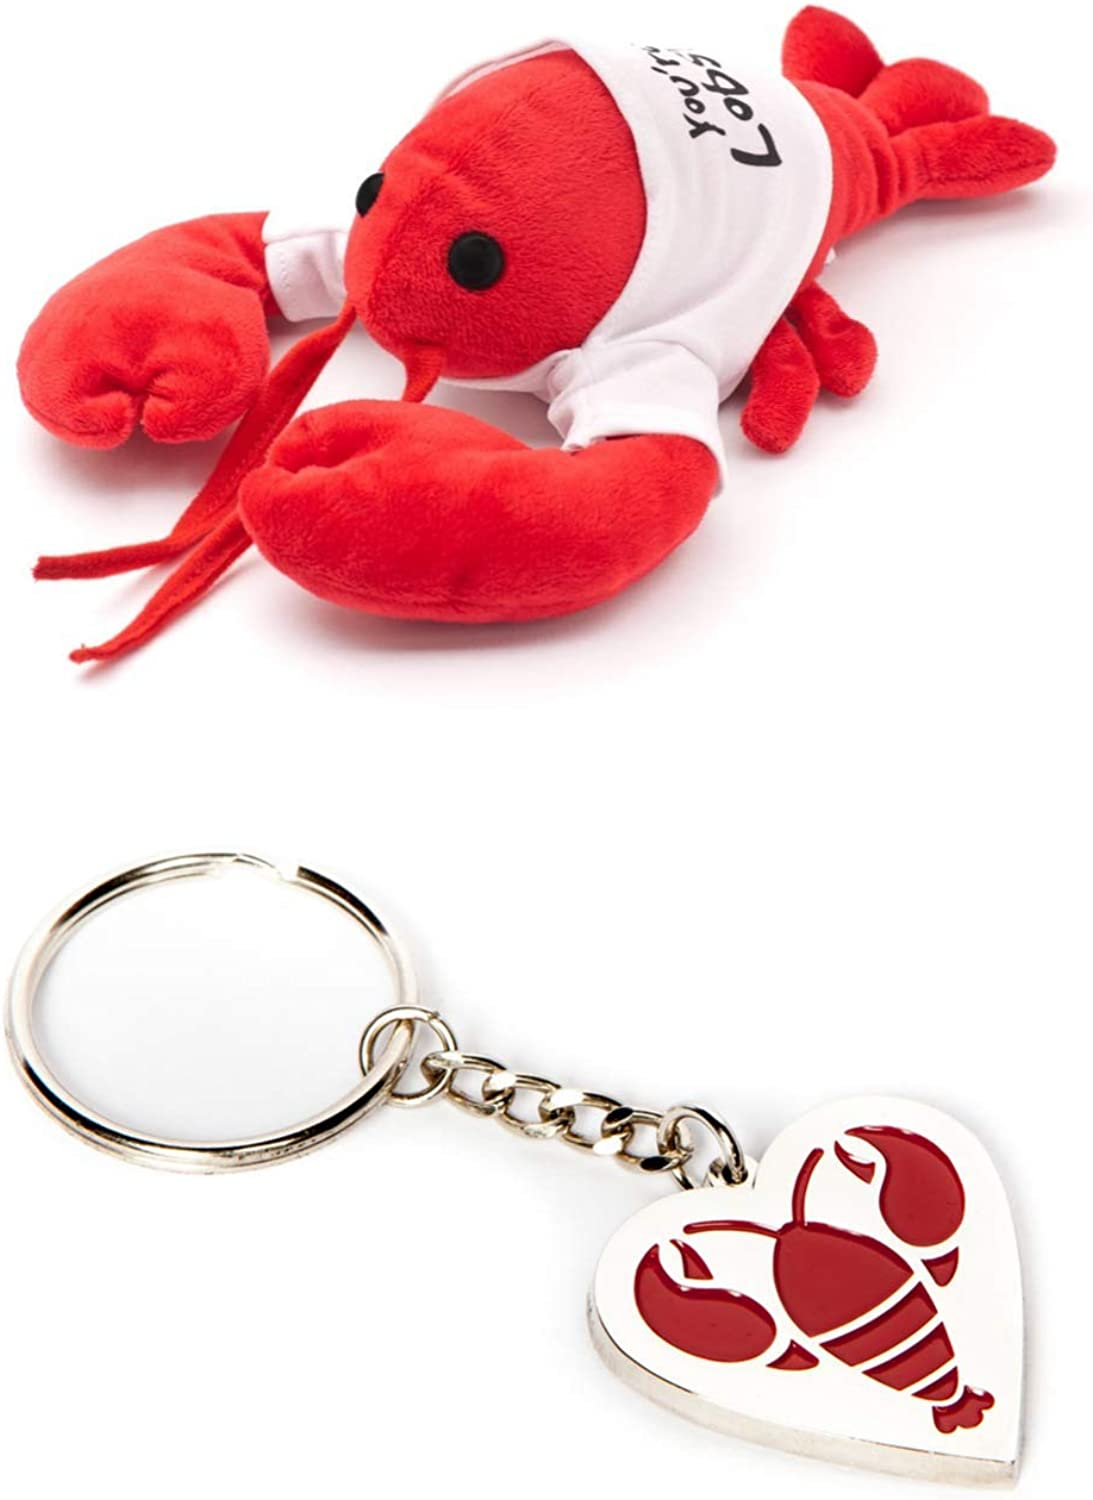 Friends Lobster Plush and Keychain – You're My Lobster Stuffed Animal Toy and Keychain – Cool TV Props Friends Merchandise – Romantic Bundle